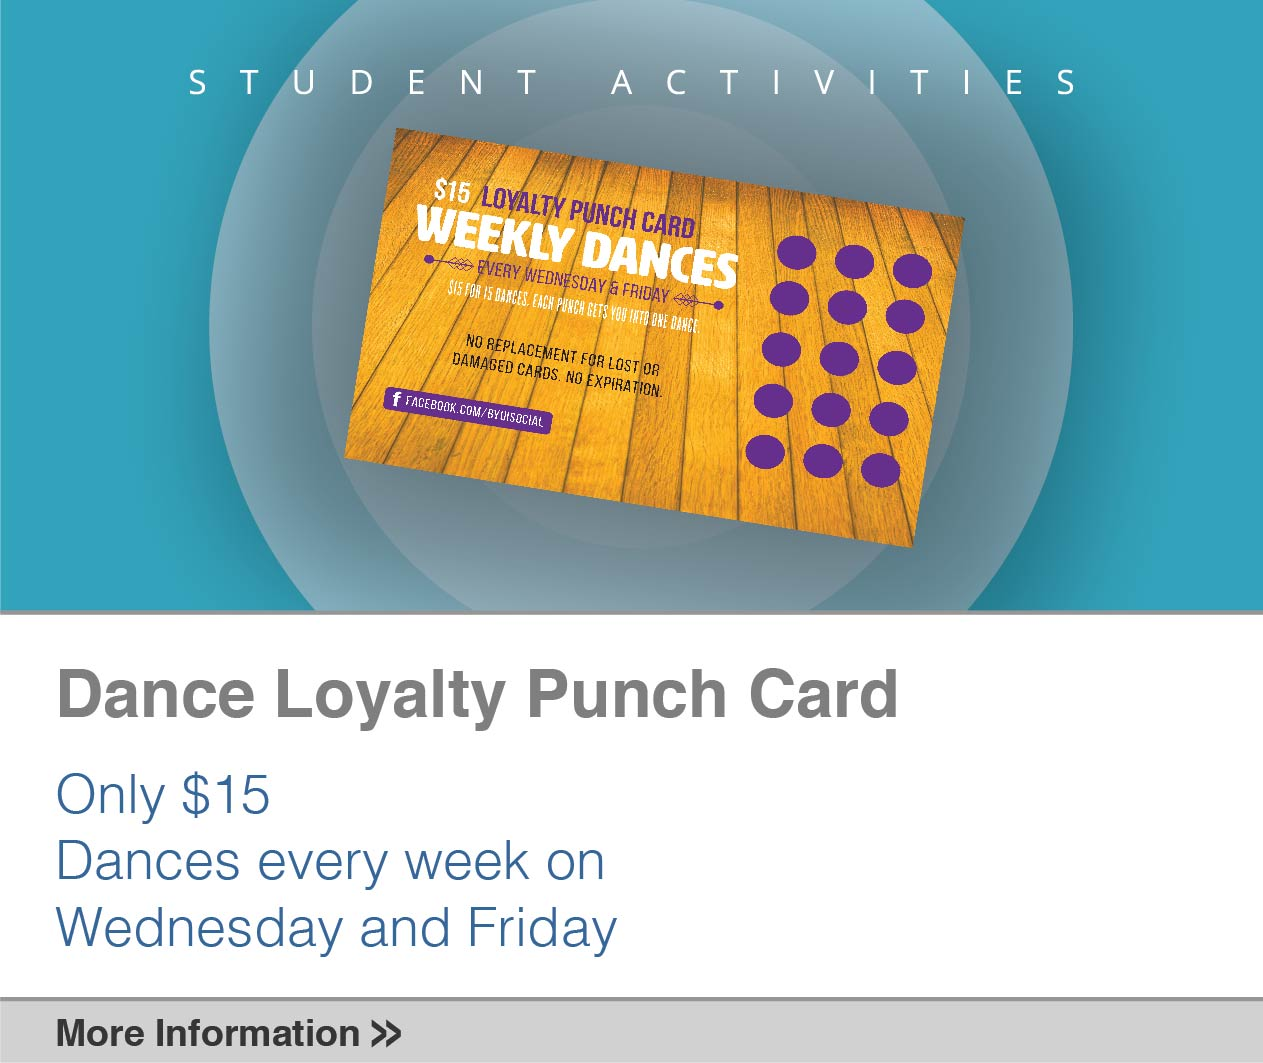 Dance Loyalty Punch Card. Only $15. Dances every week on Wednesday and Friday.